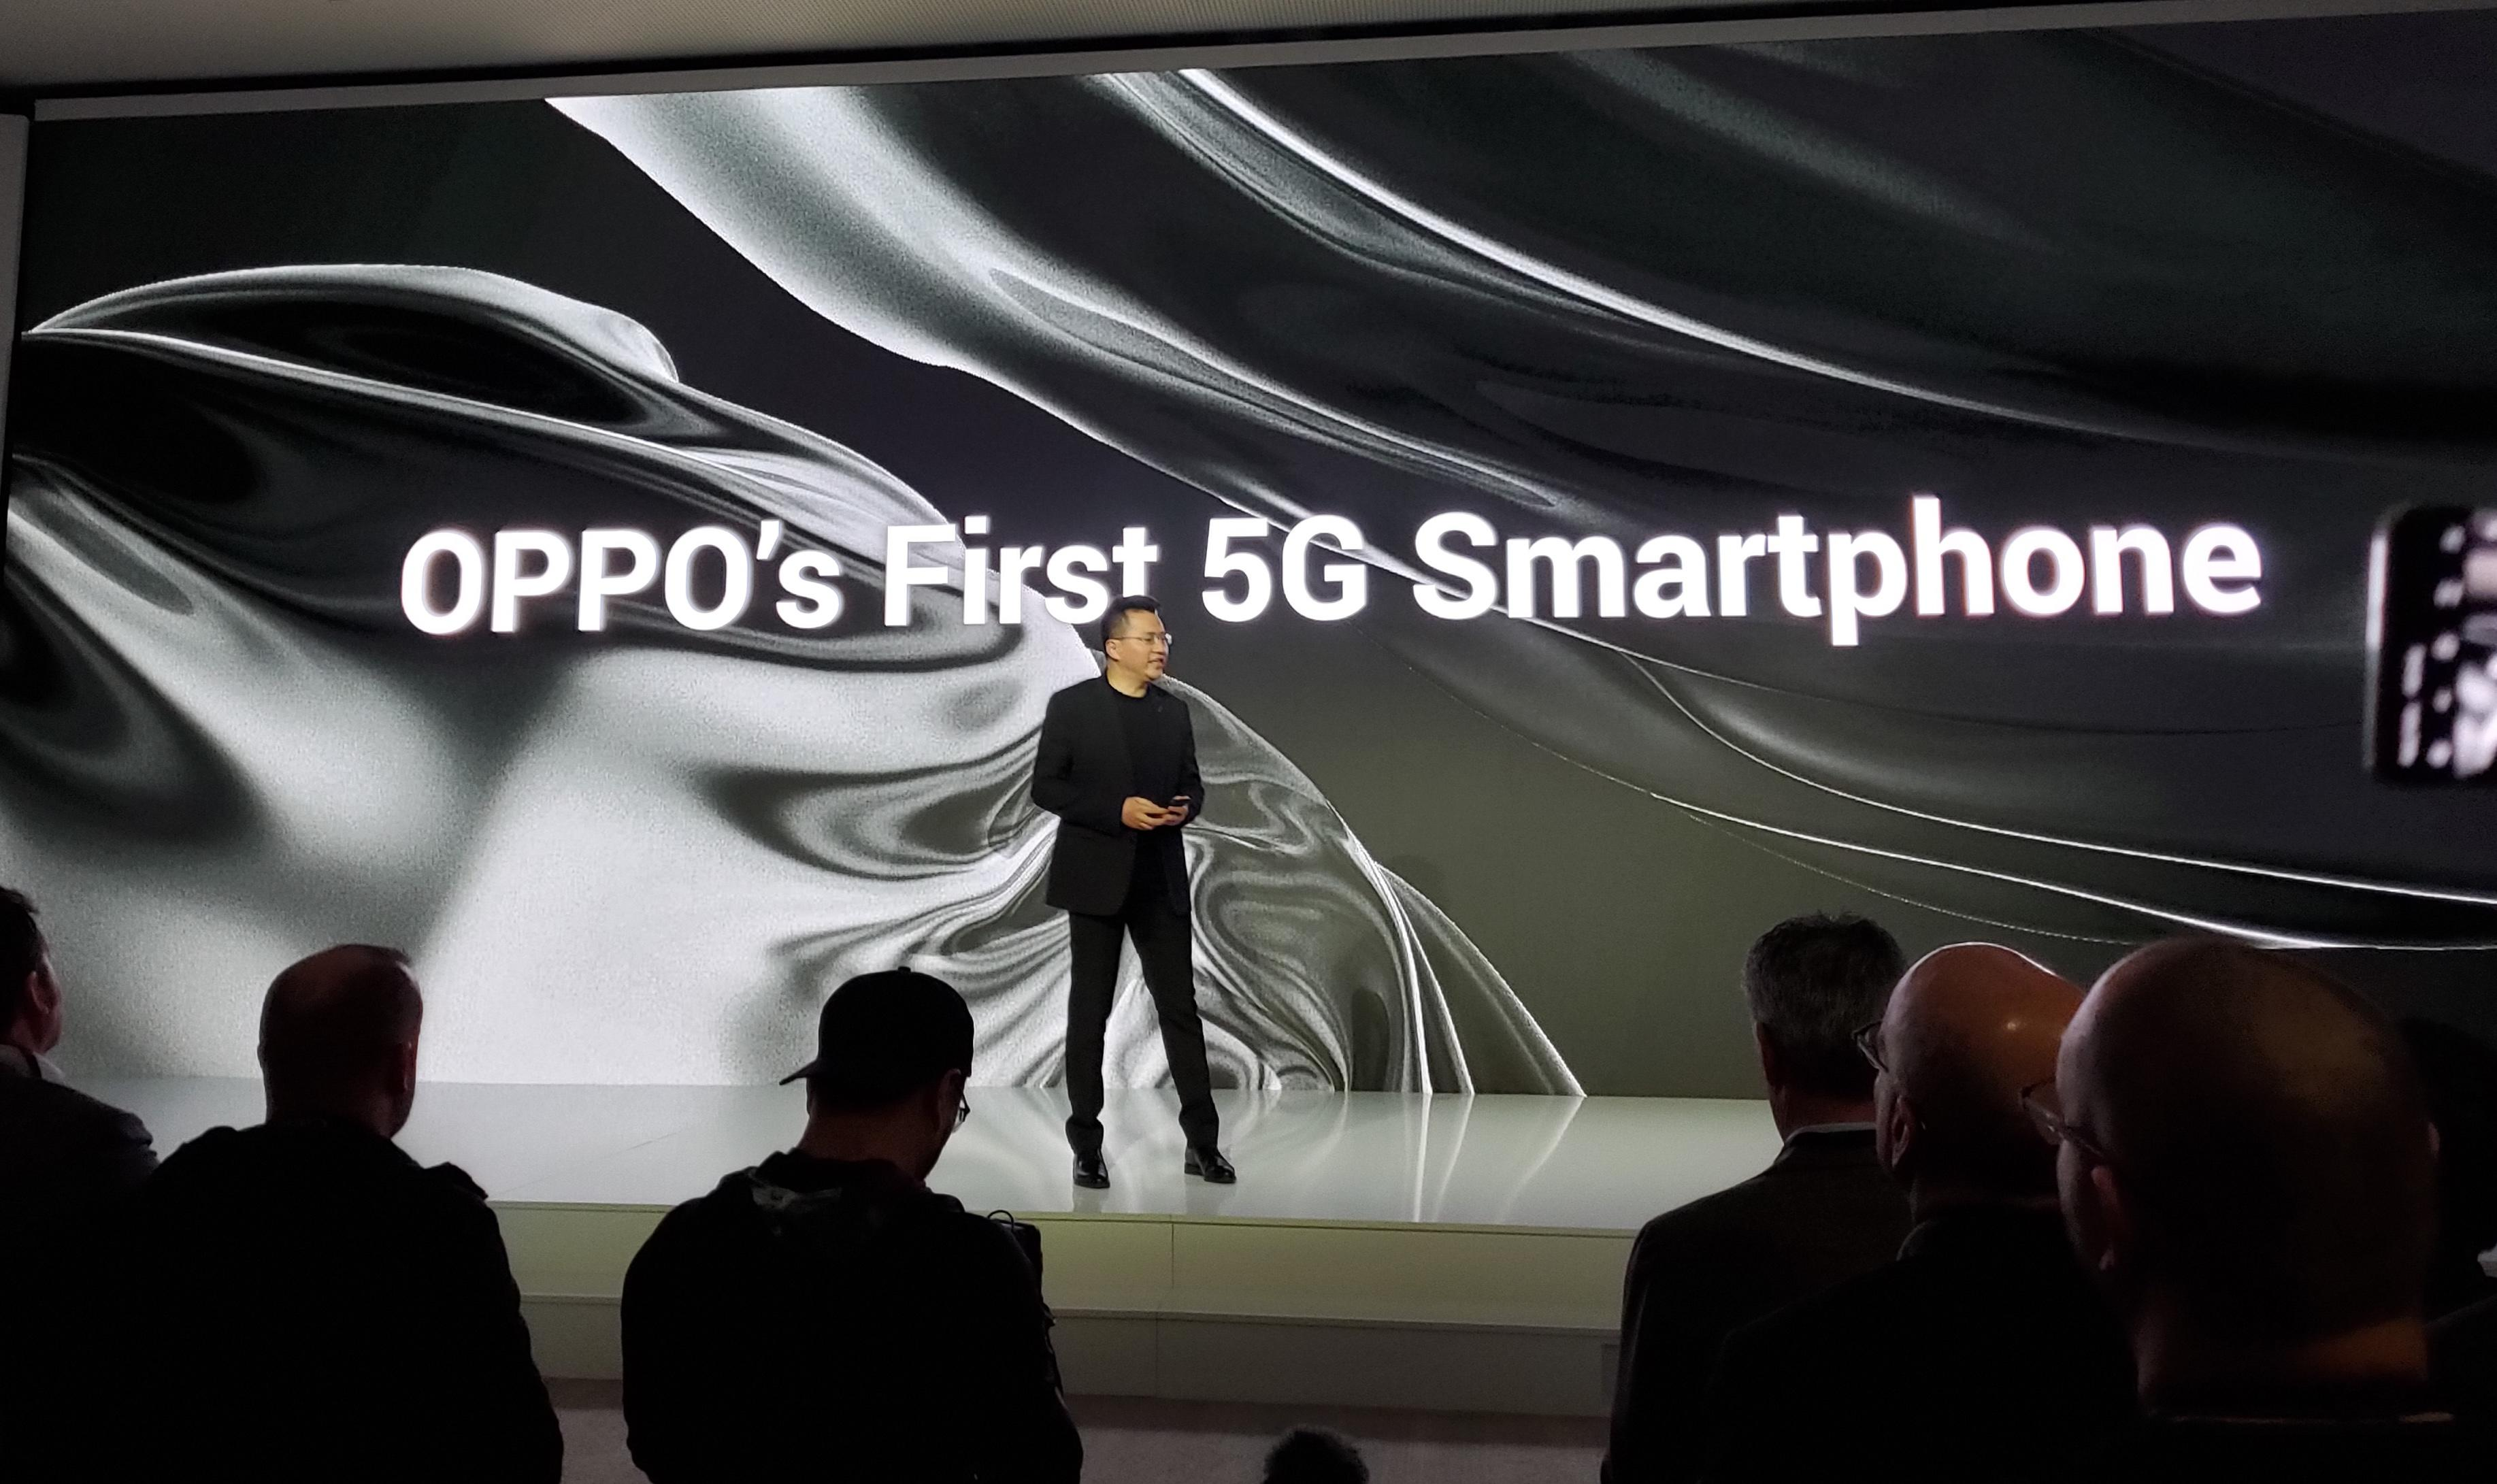 oppo-5g-phone-mwc-2019-announcement-cropped